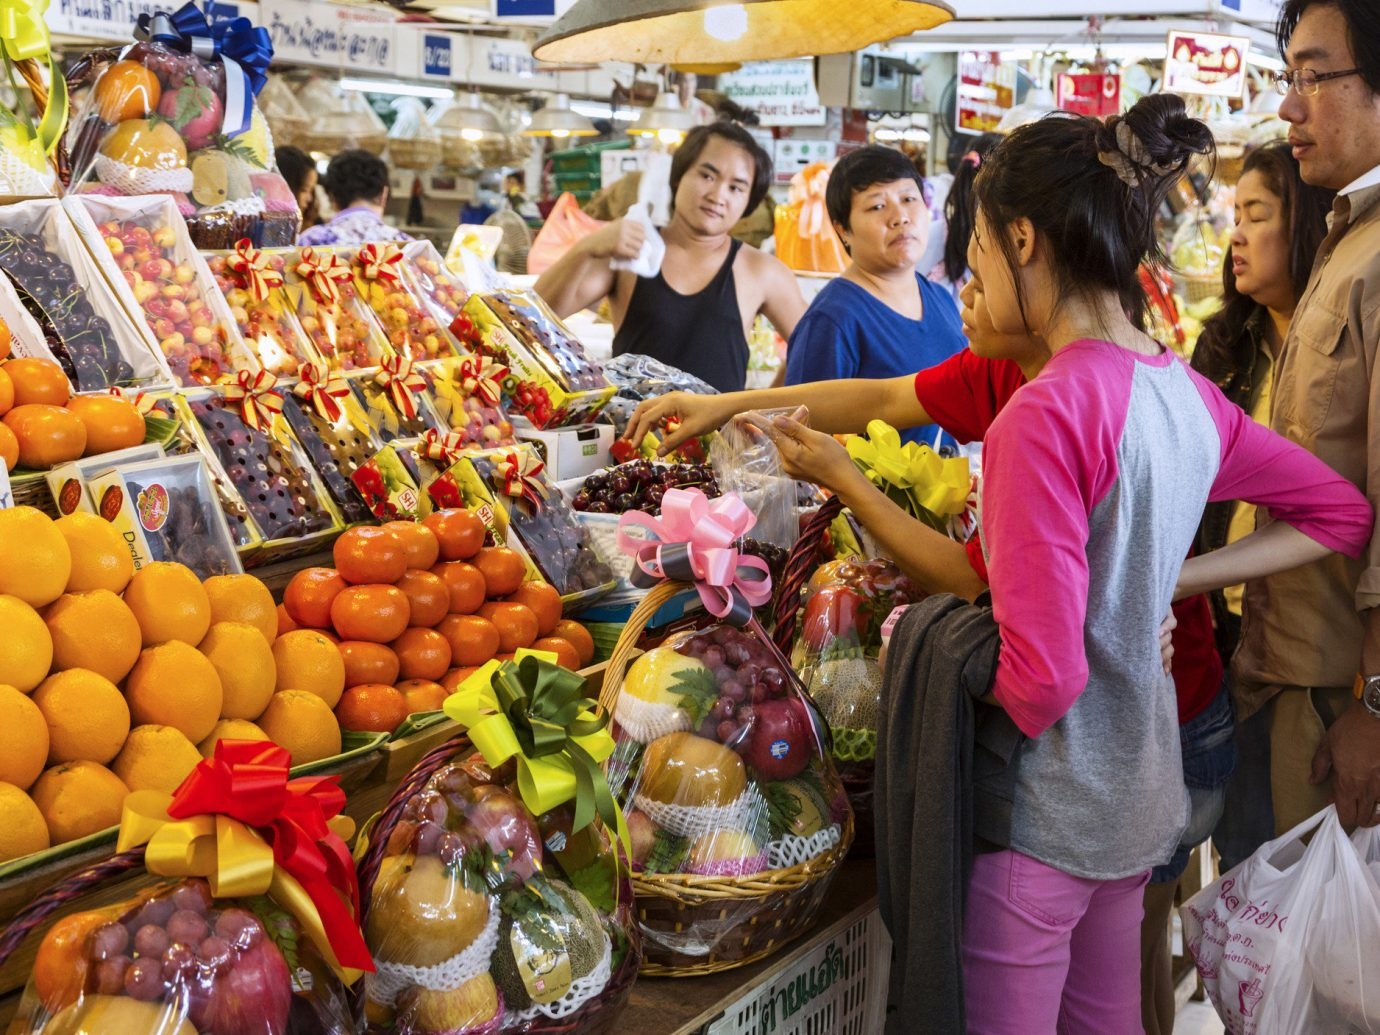 Food + Drink person marketplace market fruit public space City vendor human settlement bazaar grocery store supermarket scene food greengrocer produce retail stall store fresh sale variety